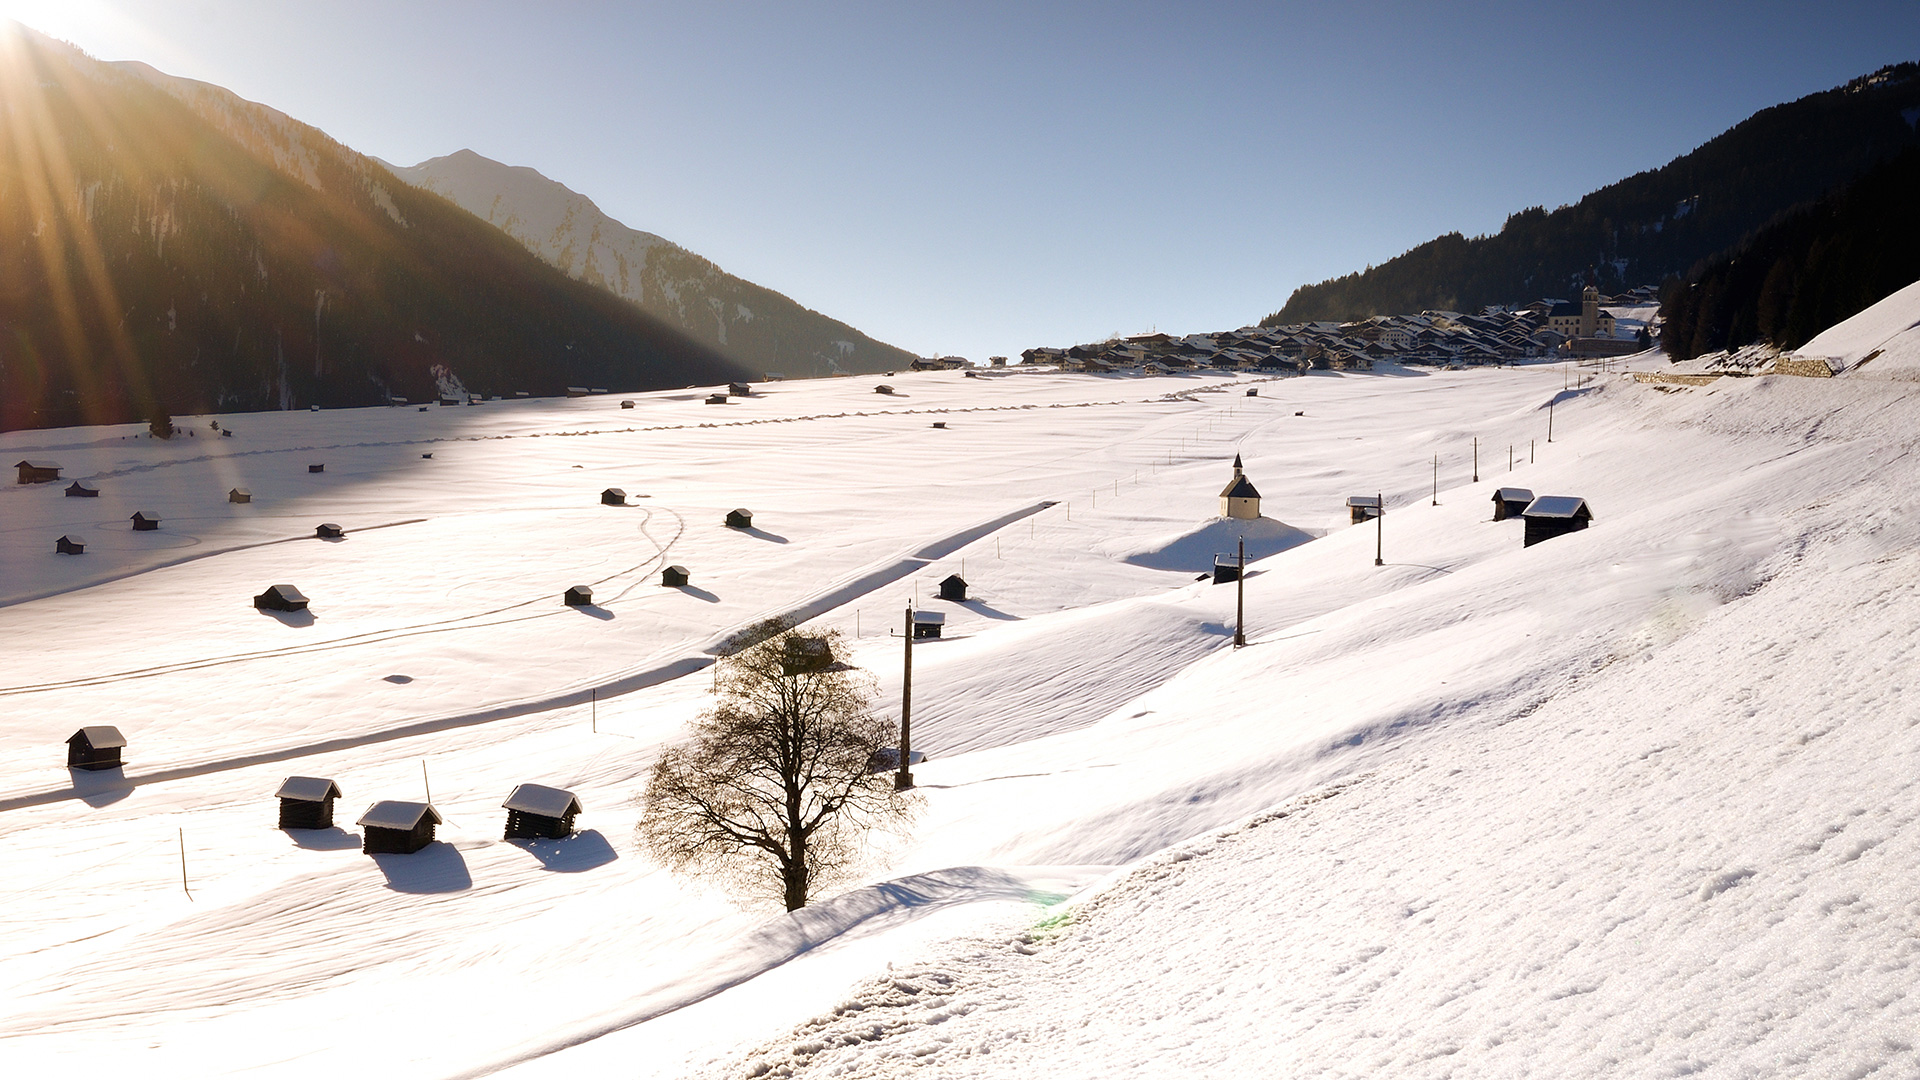 Winter landscape with barns in the mountains